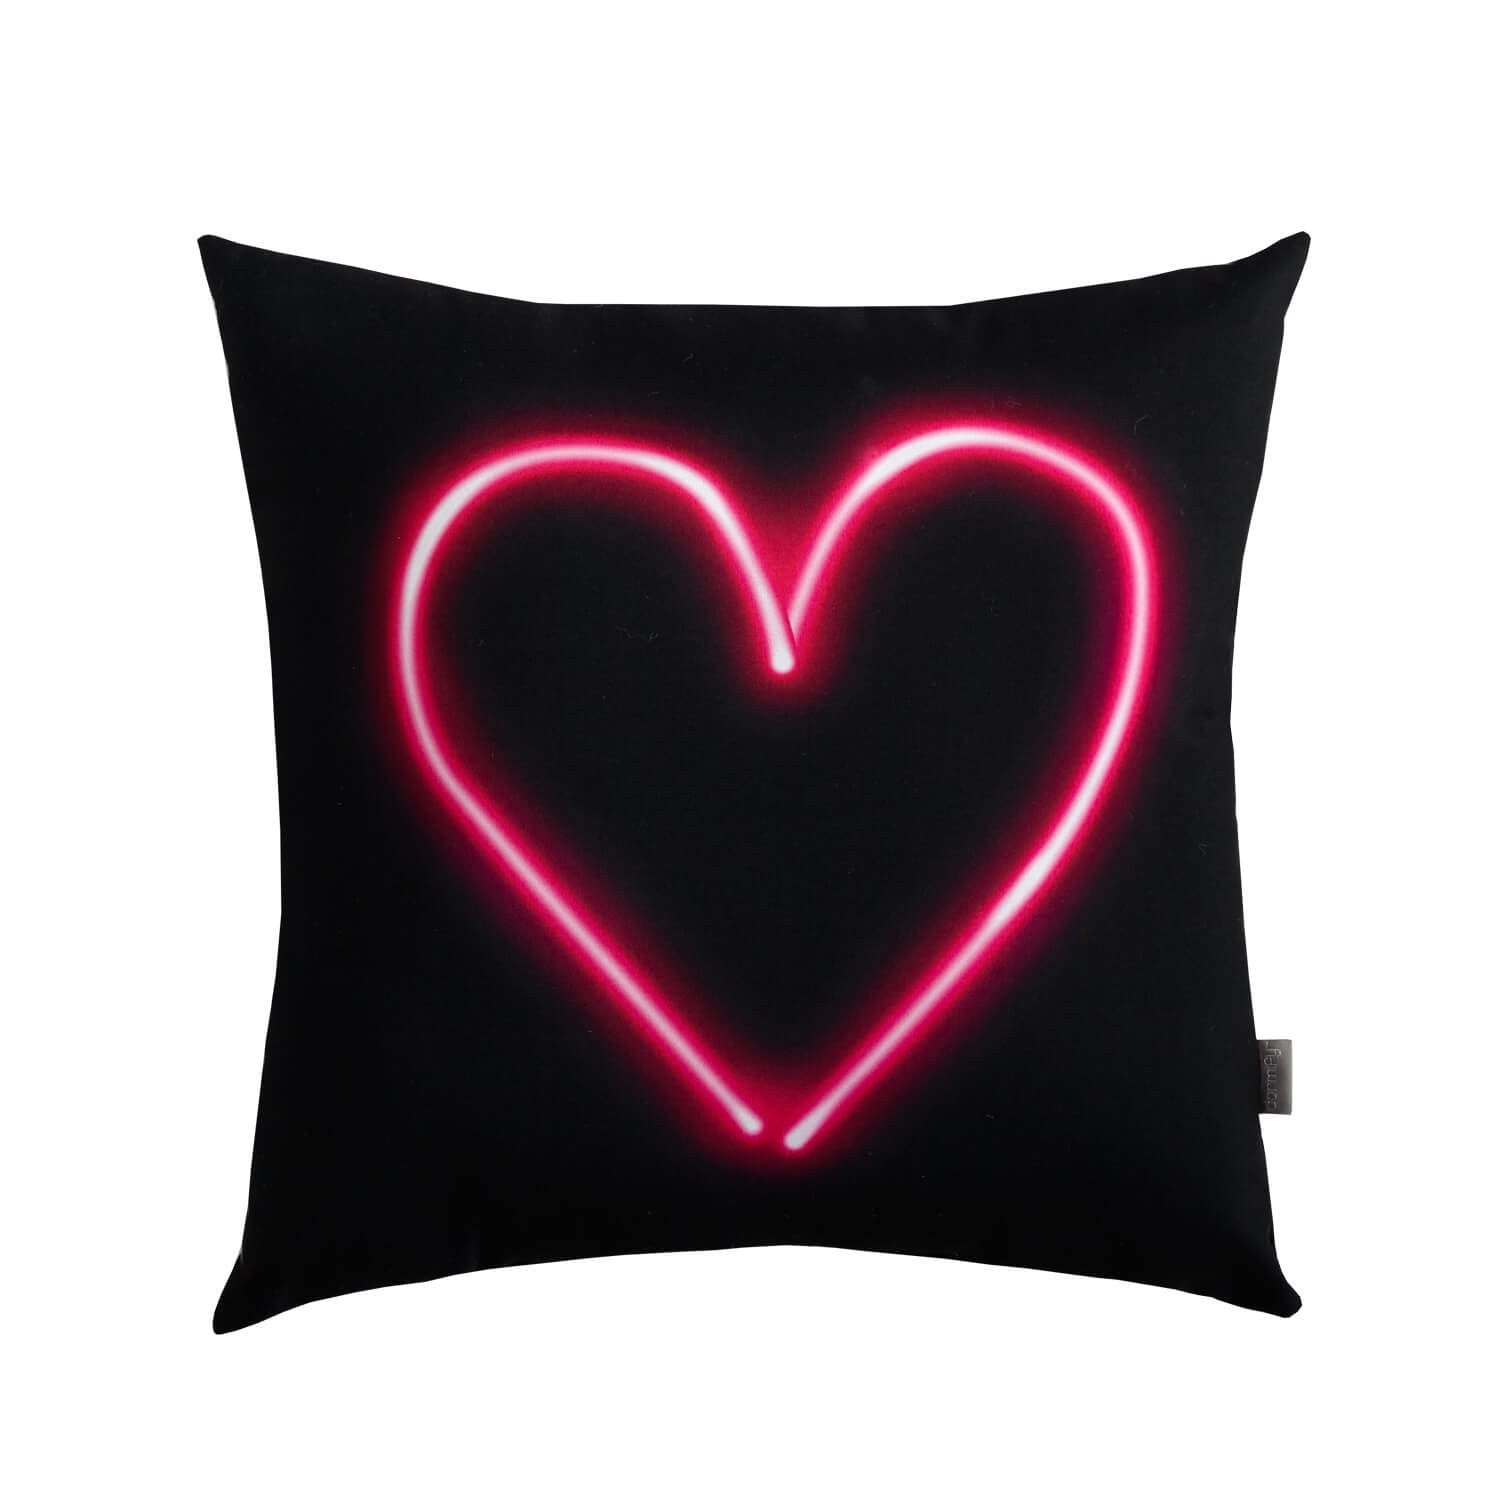 Neon Pink Heart Pillow - White